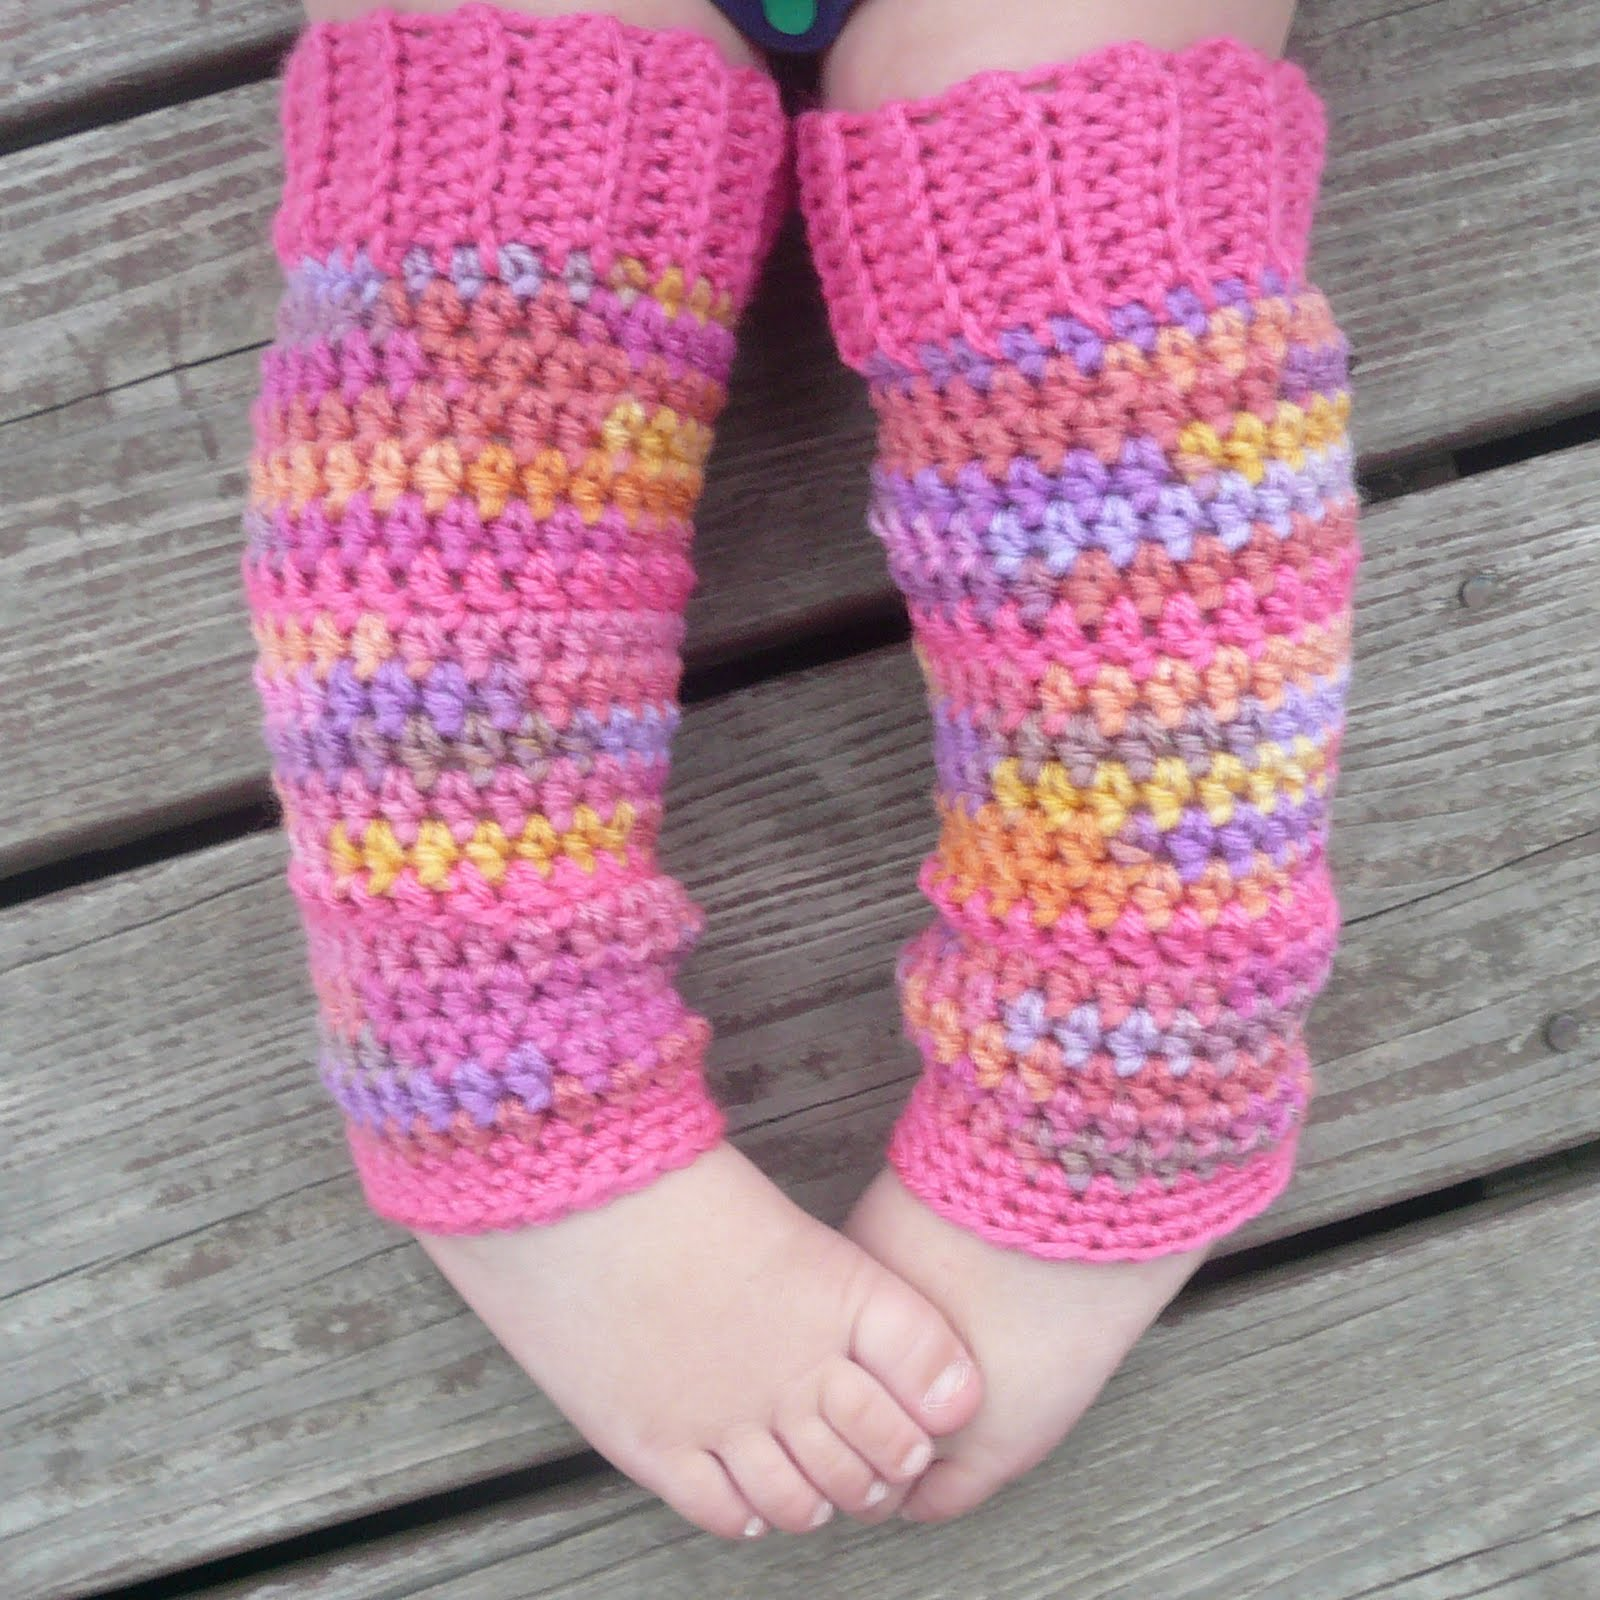 Leg Warmers - These leg warmers will be most appreciated in the